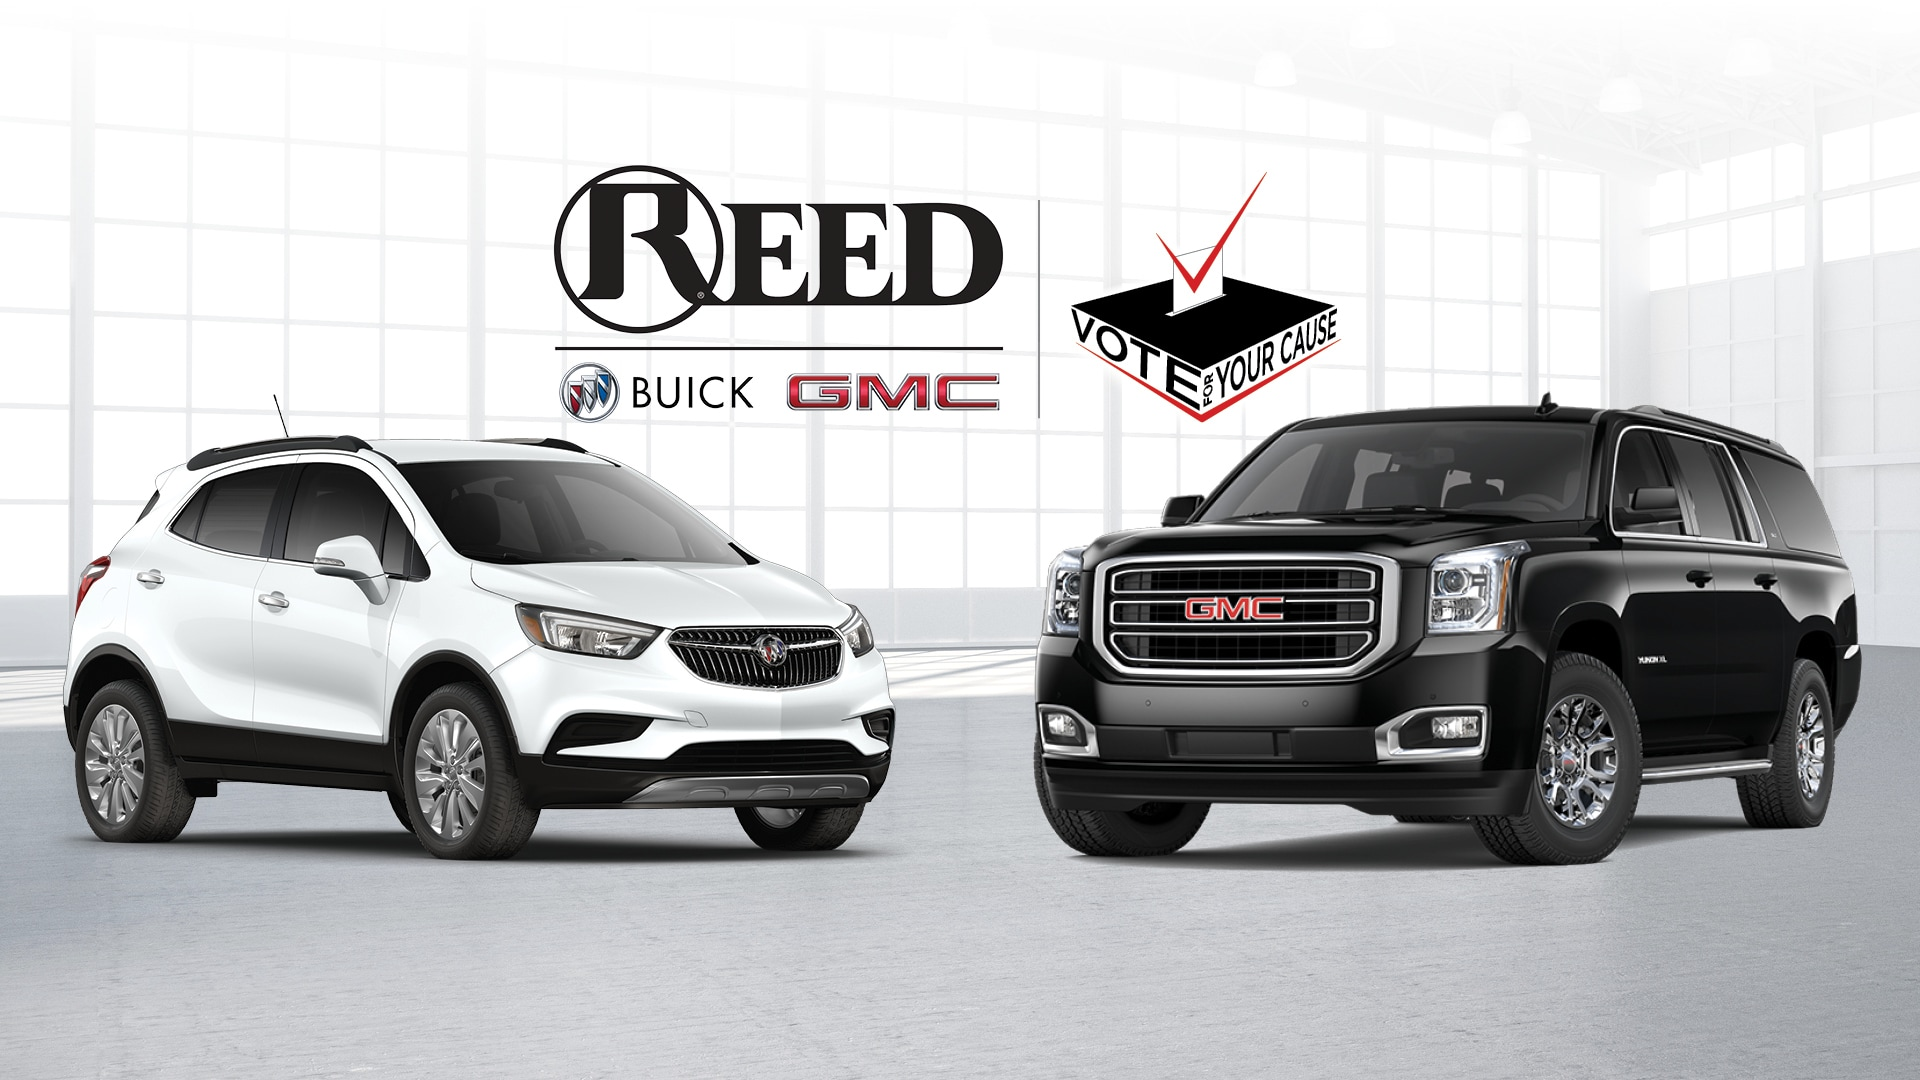 Reed Buick GMC Charity Contest